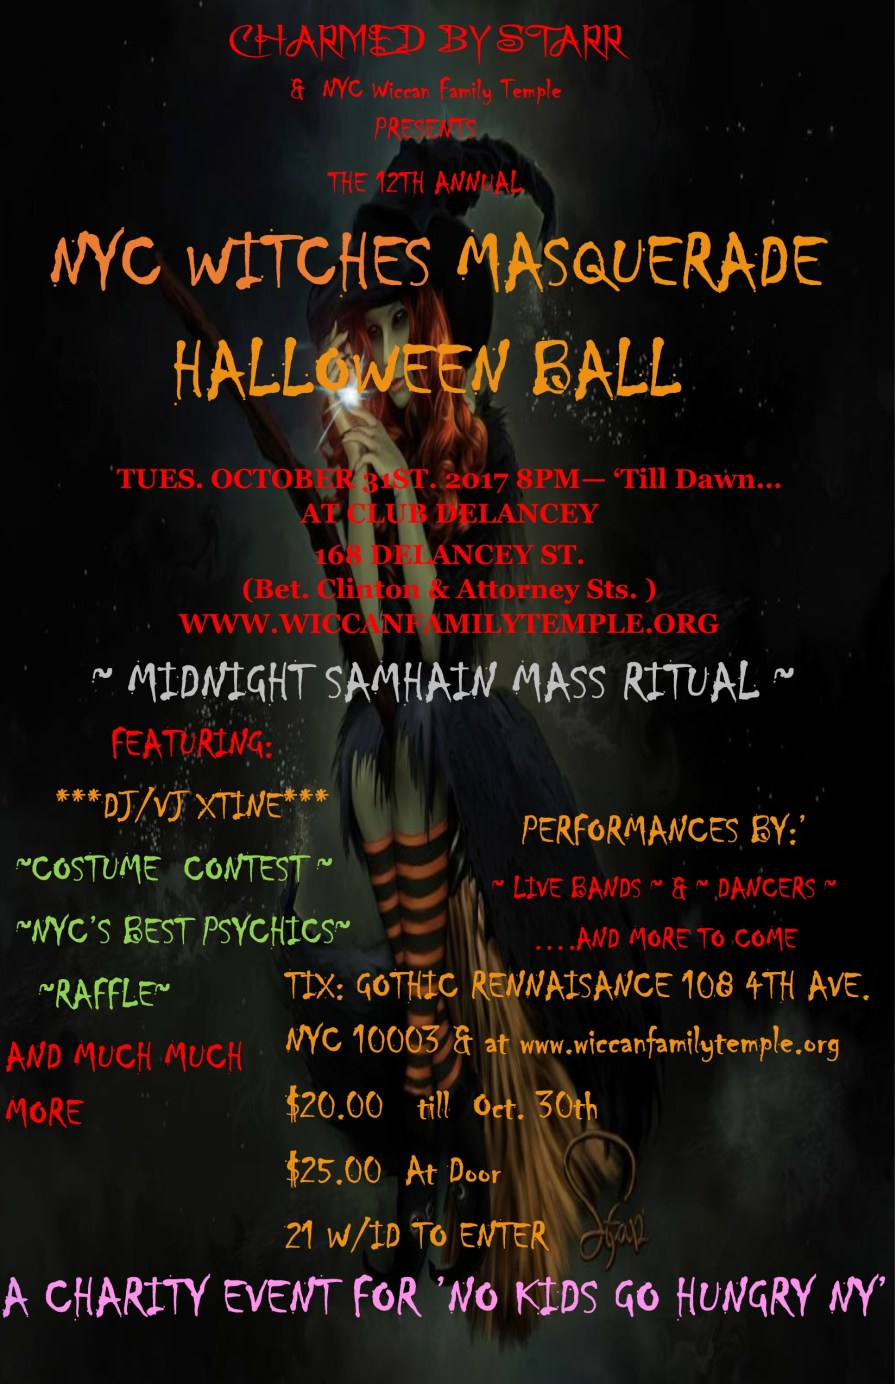 nyc witches halloween masquerade ball the new york city wiccan